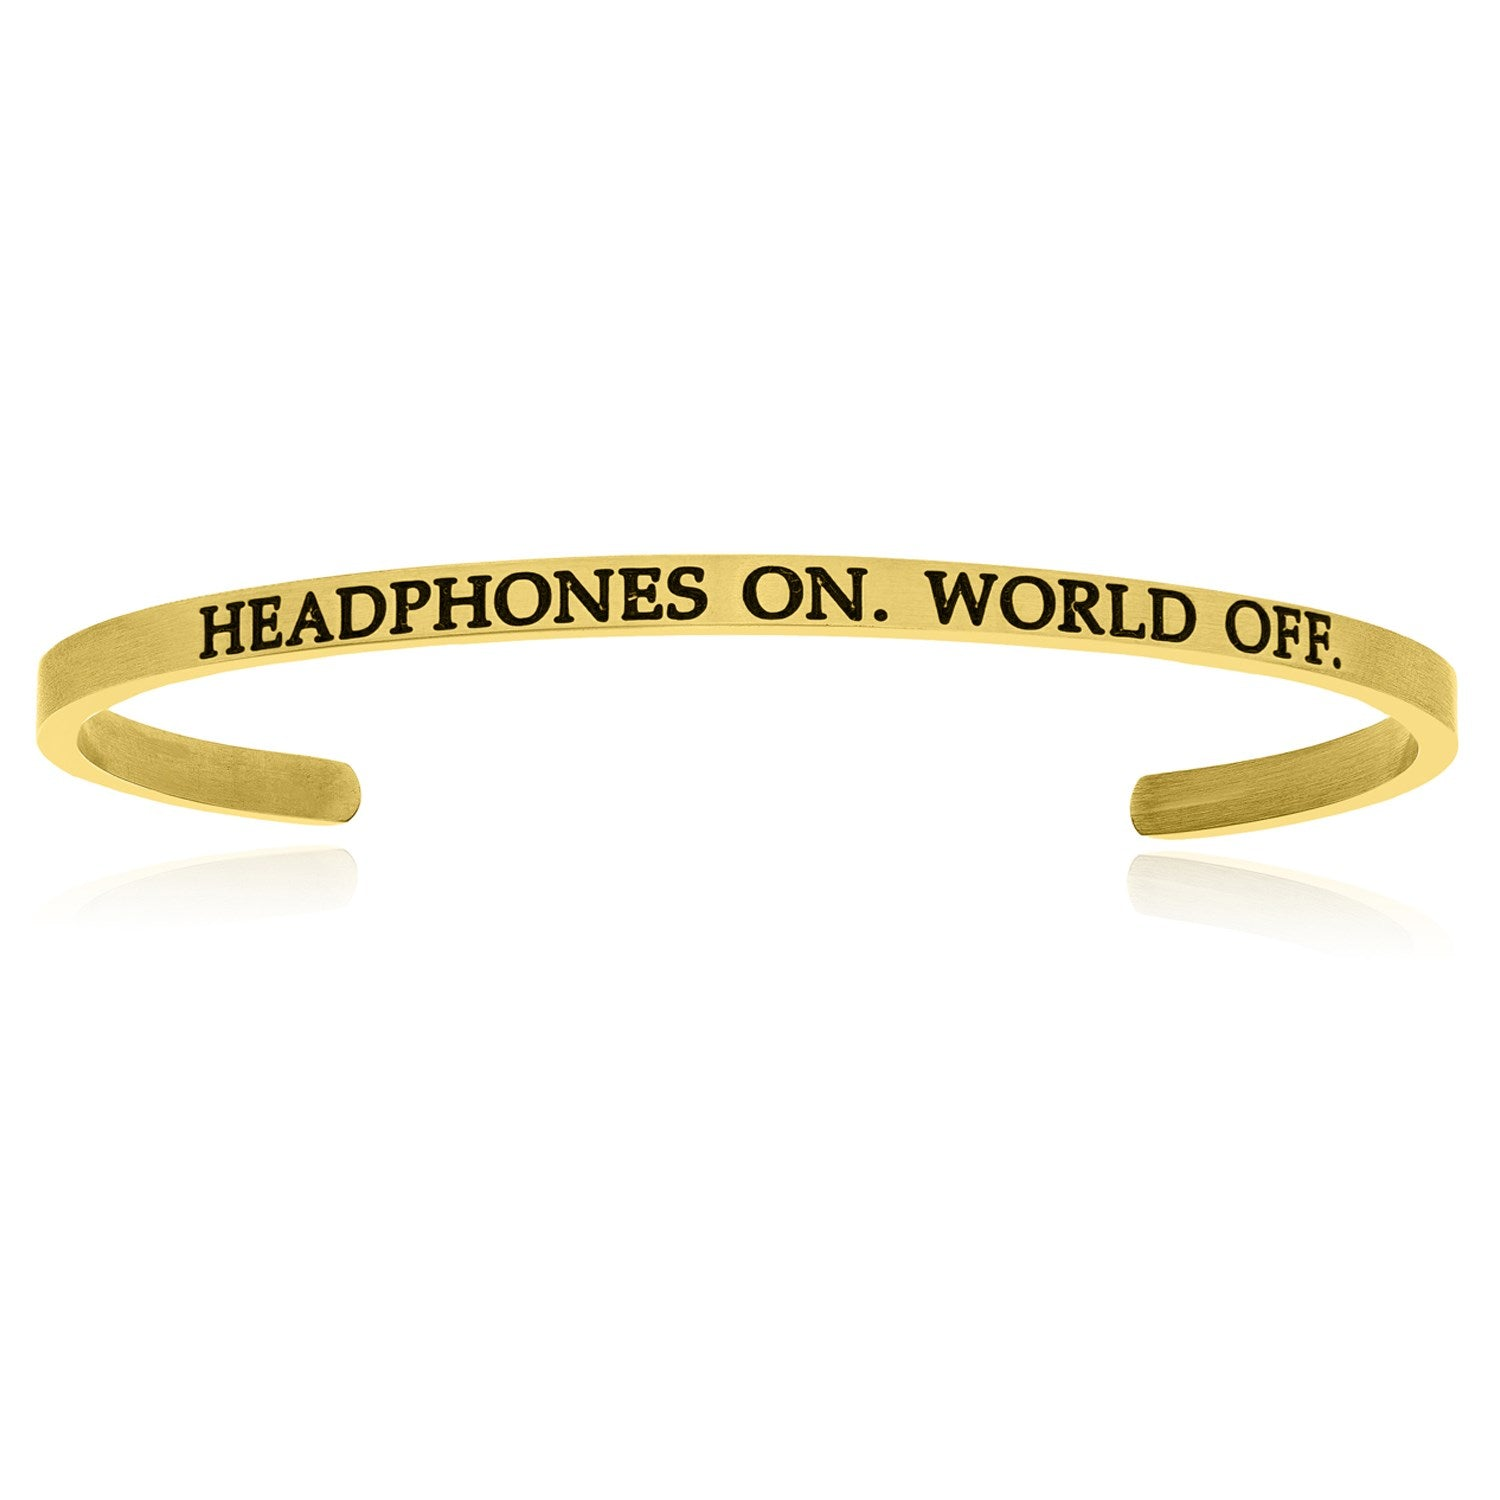 Yellow Stainless Steel Headphones On World Off Cuff Bracelet